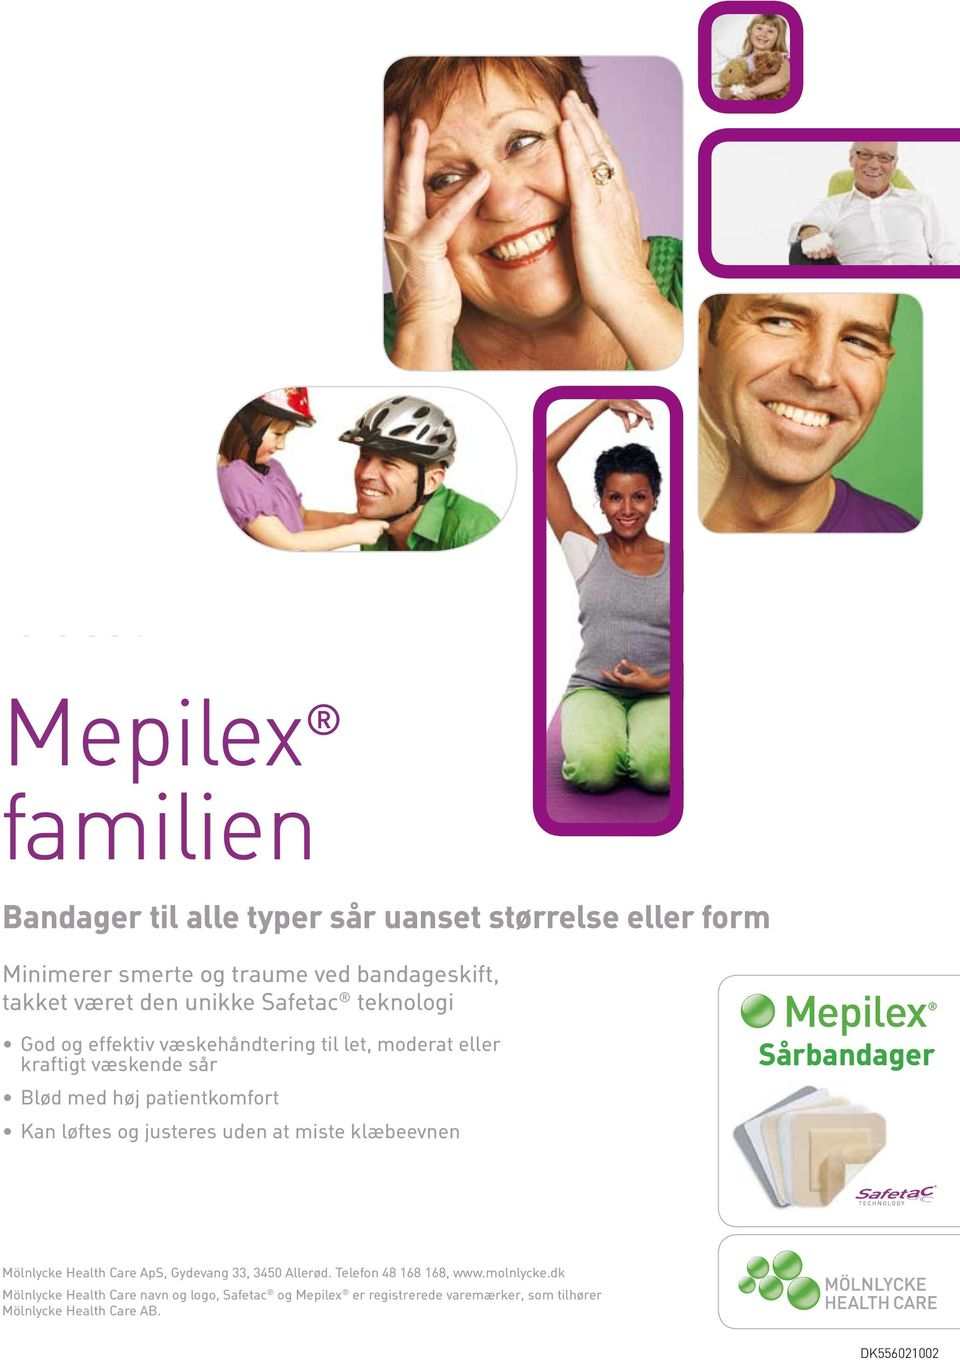 contains Safetac til technology, let, moderat which eller has kraftigt been used væskende on millions sår of patients Blød 93% of med patients høj patientkomfort prefer Mepilex with Kan Safetac